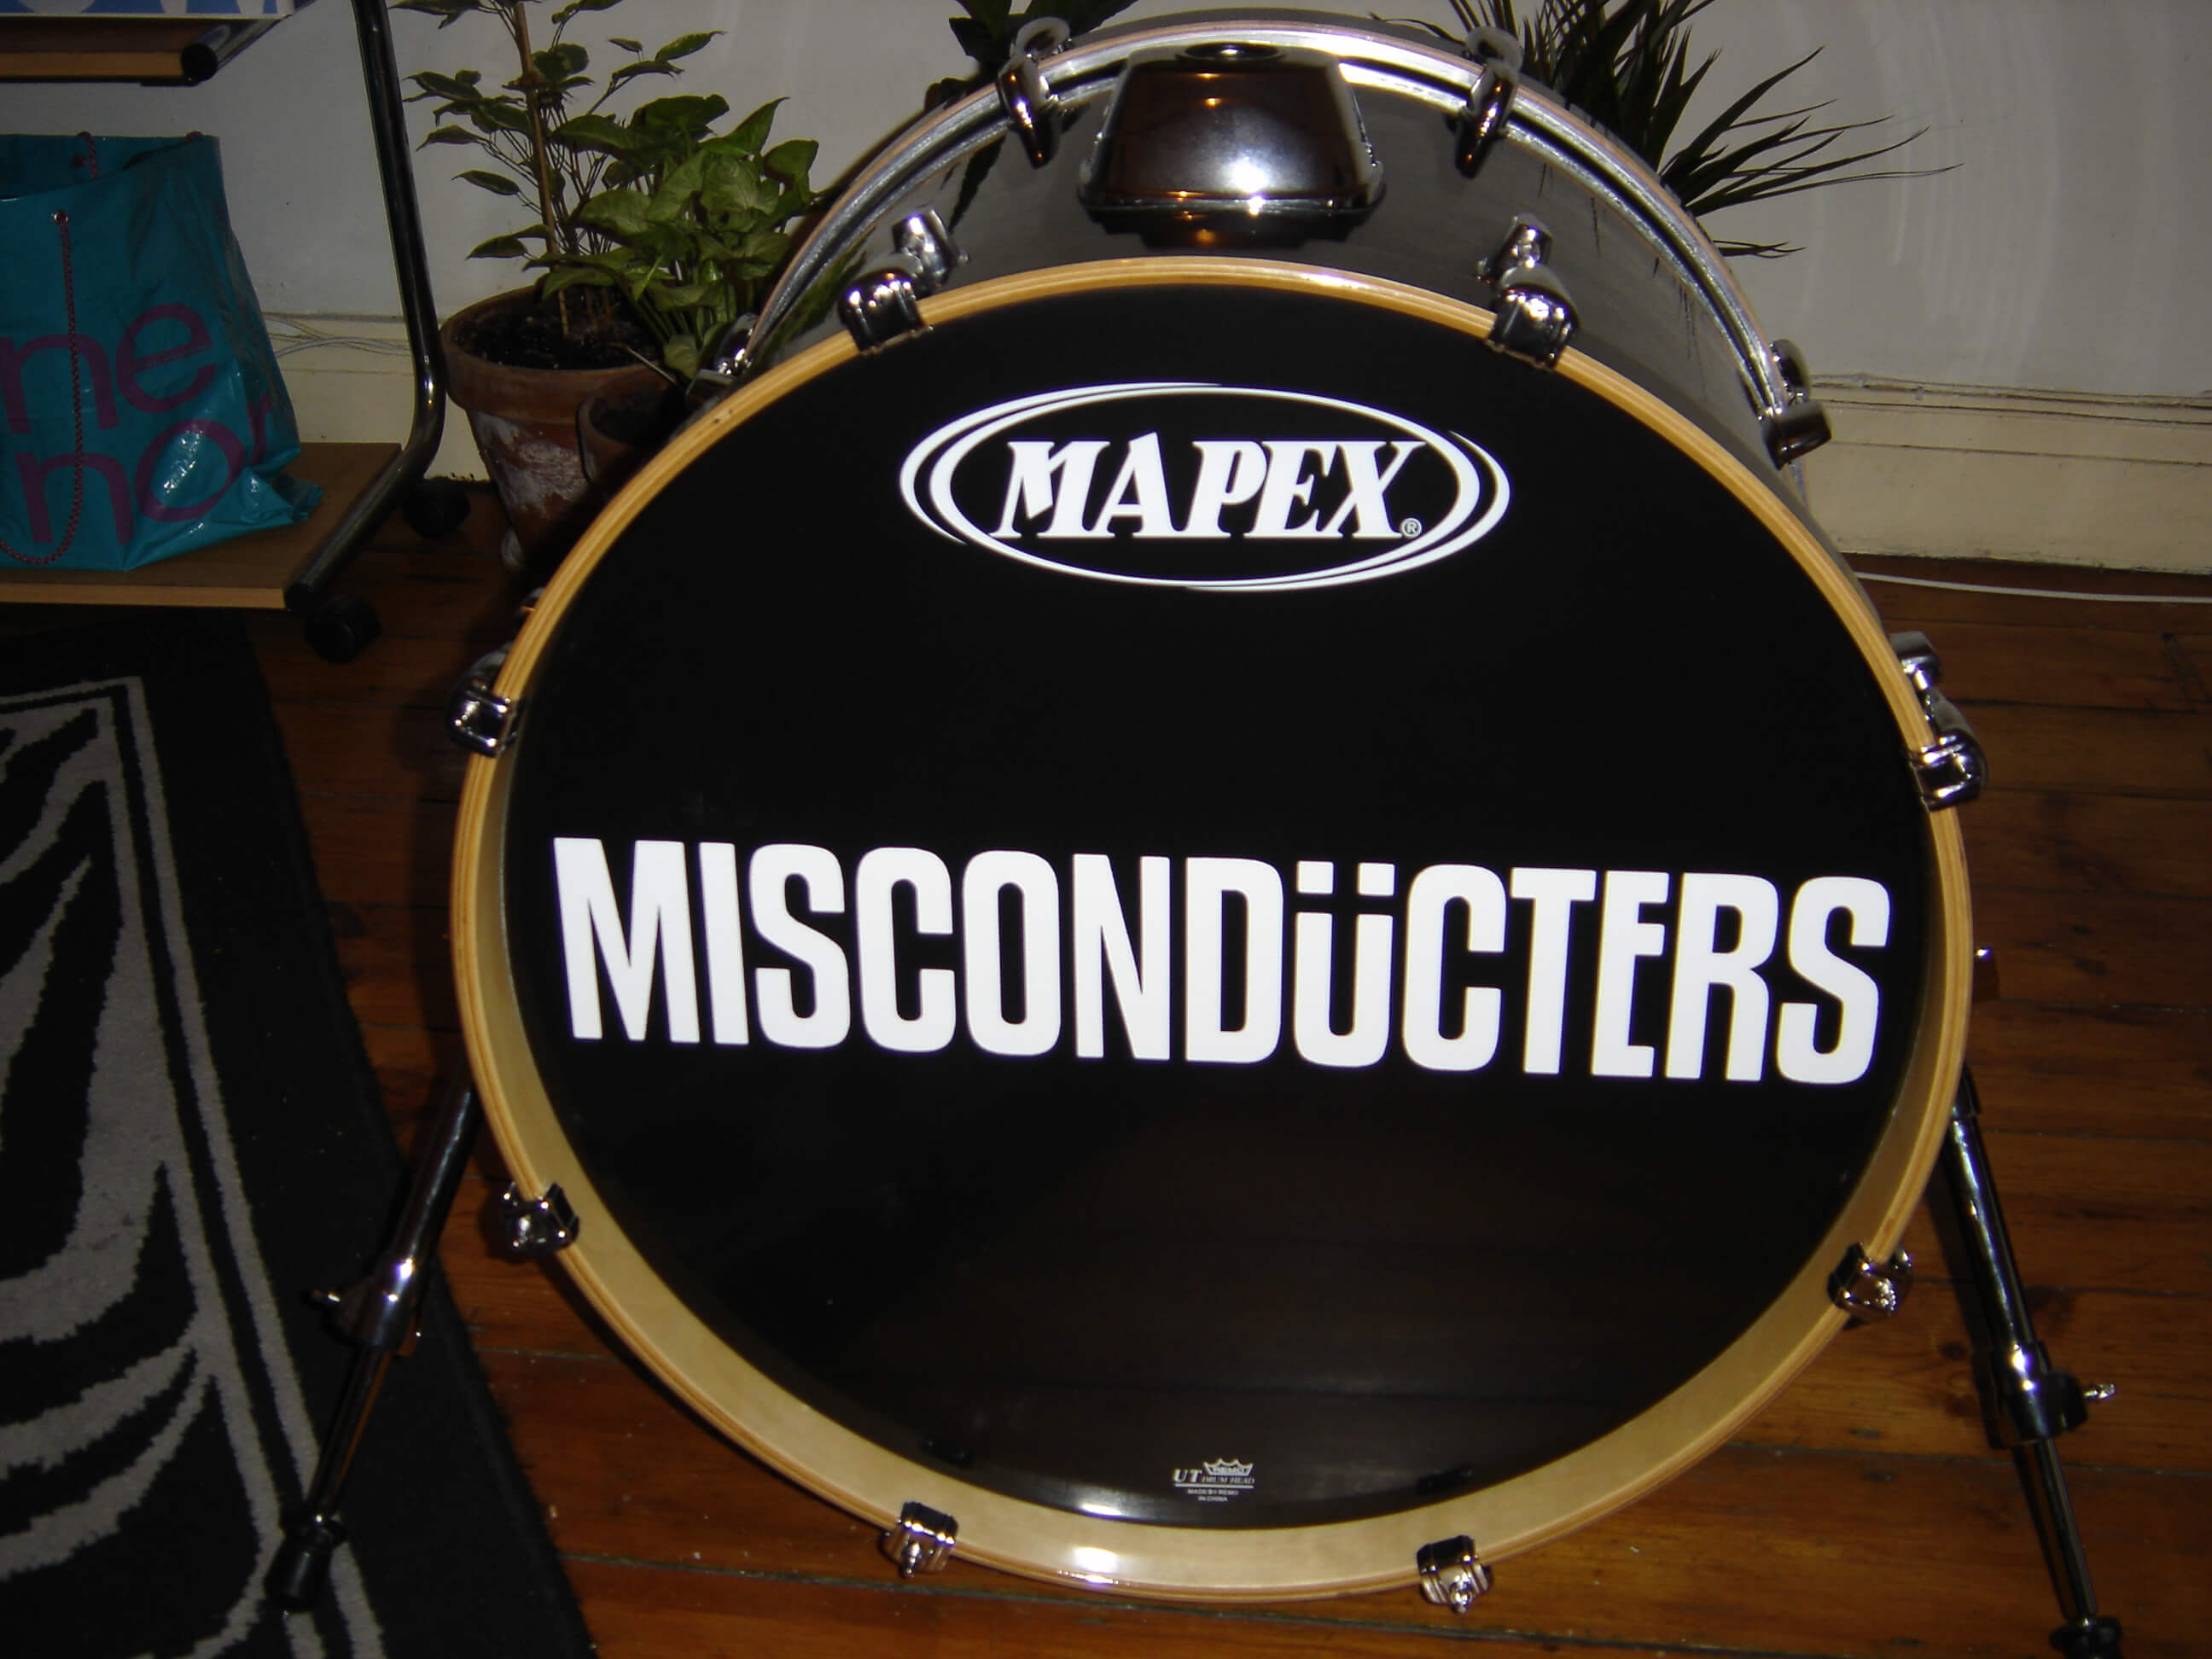 Misconducters, Bass drum decals, kick drum decals, drum stickers, sale, cheap price, die-cut, die cut vinyl decals, music bands, local band